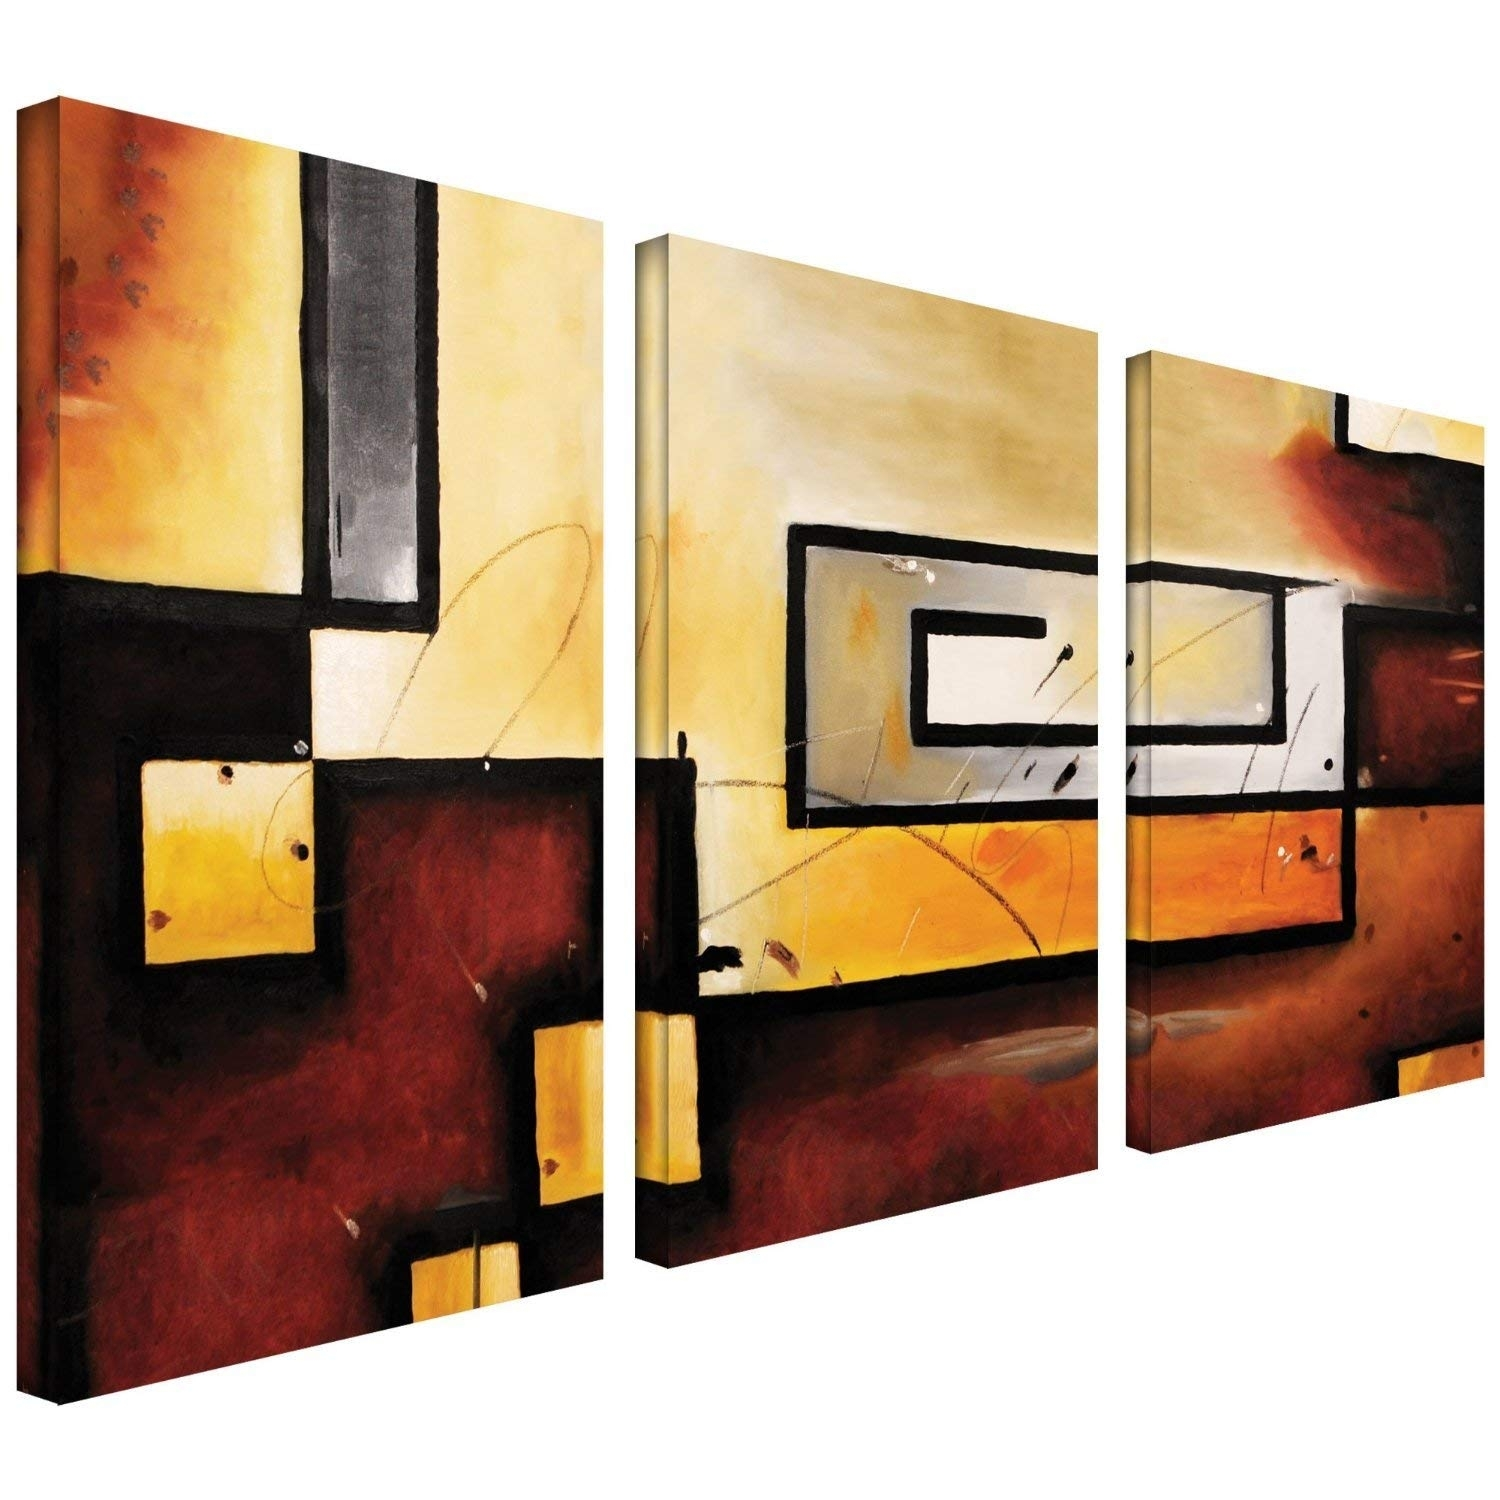 Amazon: Art Wall 3-Piece Abstract Modern Gallery Wrapped Canvas throughout Abstract Canvas Wall Art (Image 6 of 20)